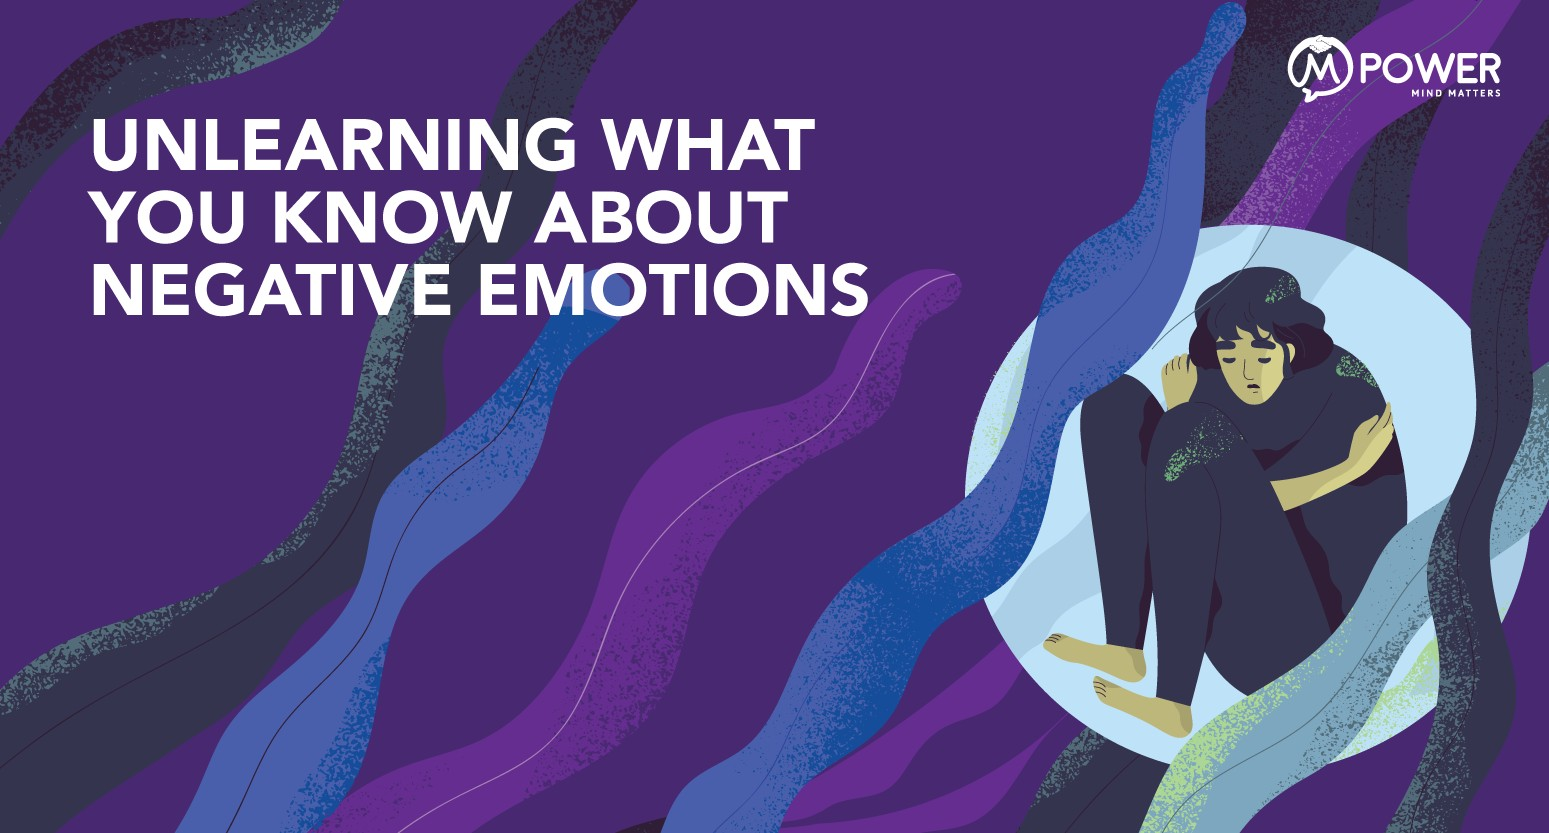 Unlearning what you know about negative emotions